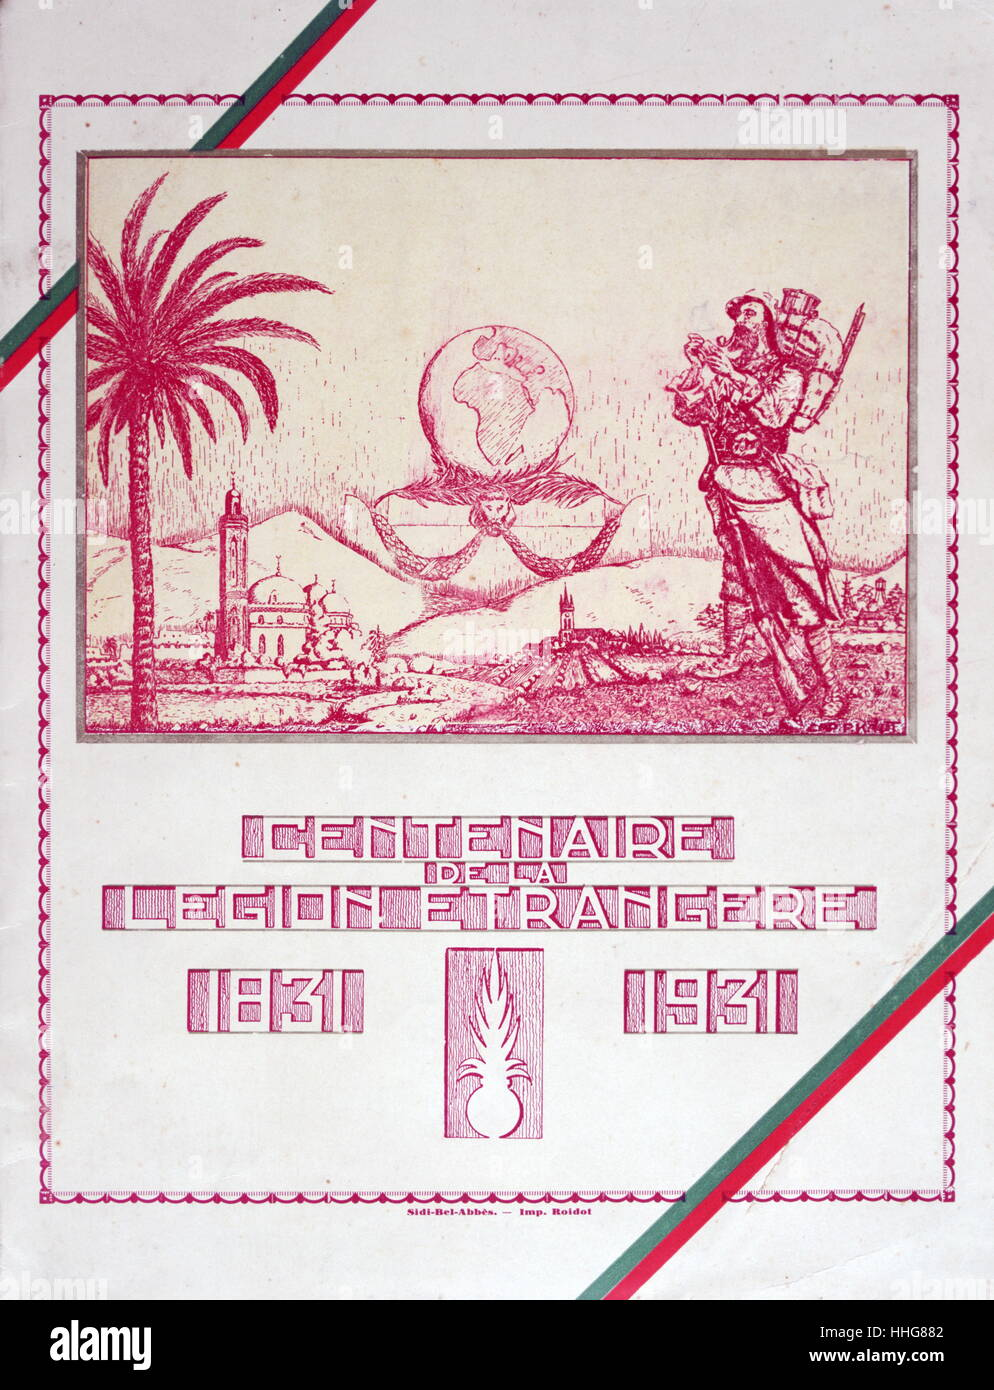 Commemorative cover of a book celebrating the centenary of the French Foreign Legion 1931 - Stock Image